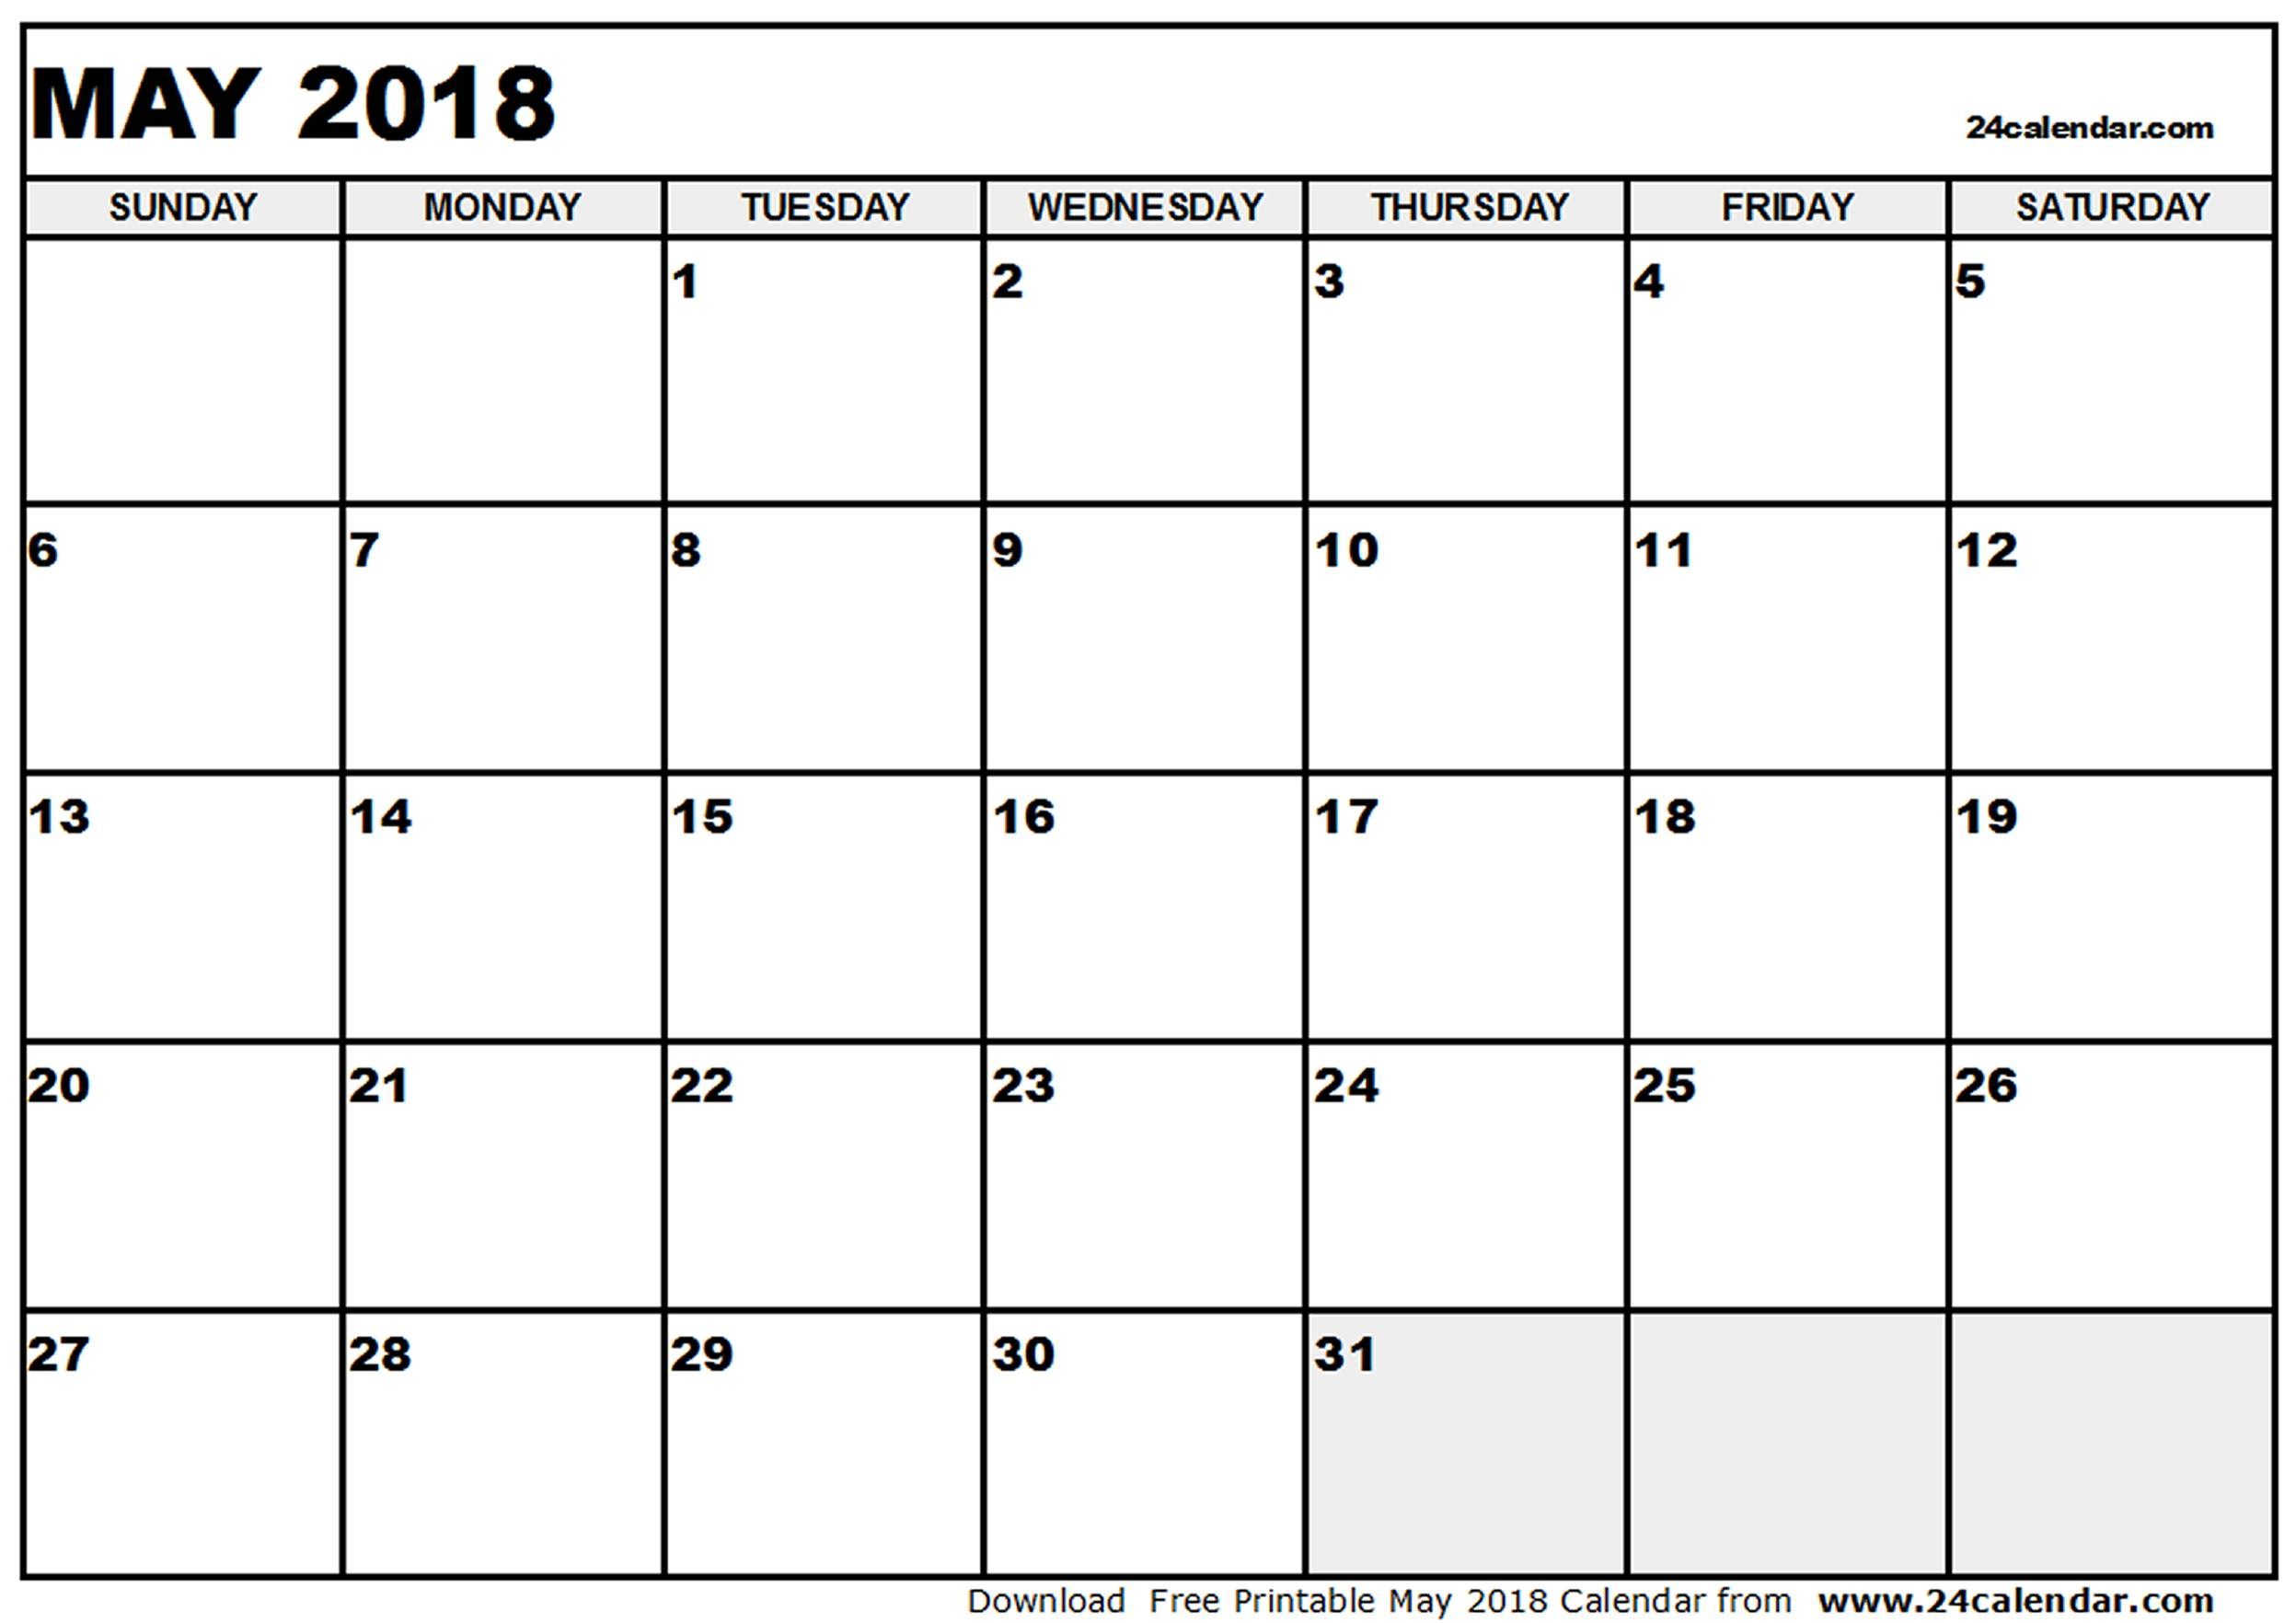 May 2018 Calendar Template | calendar monthly printable